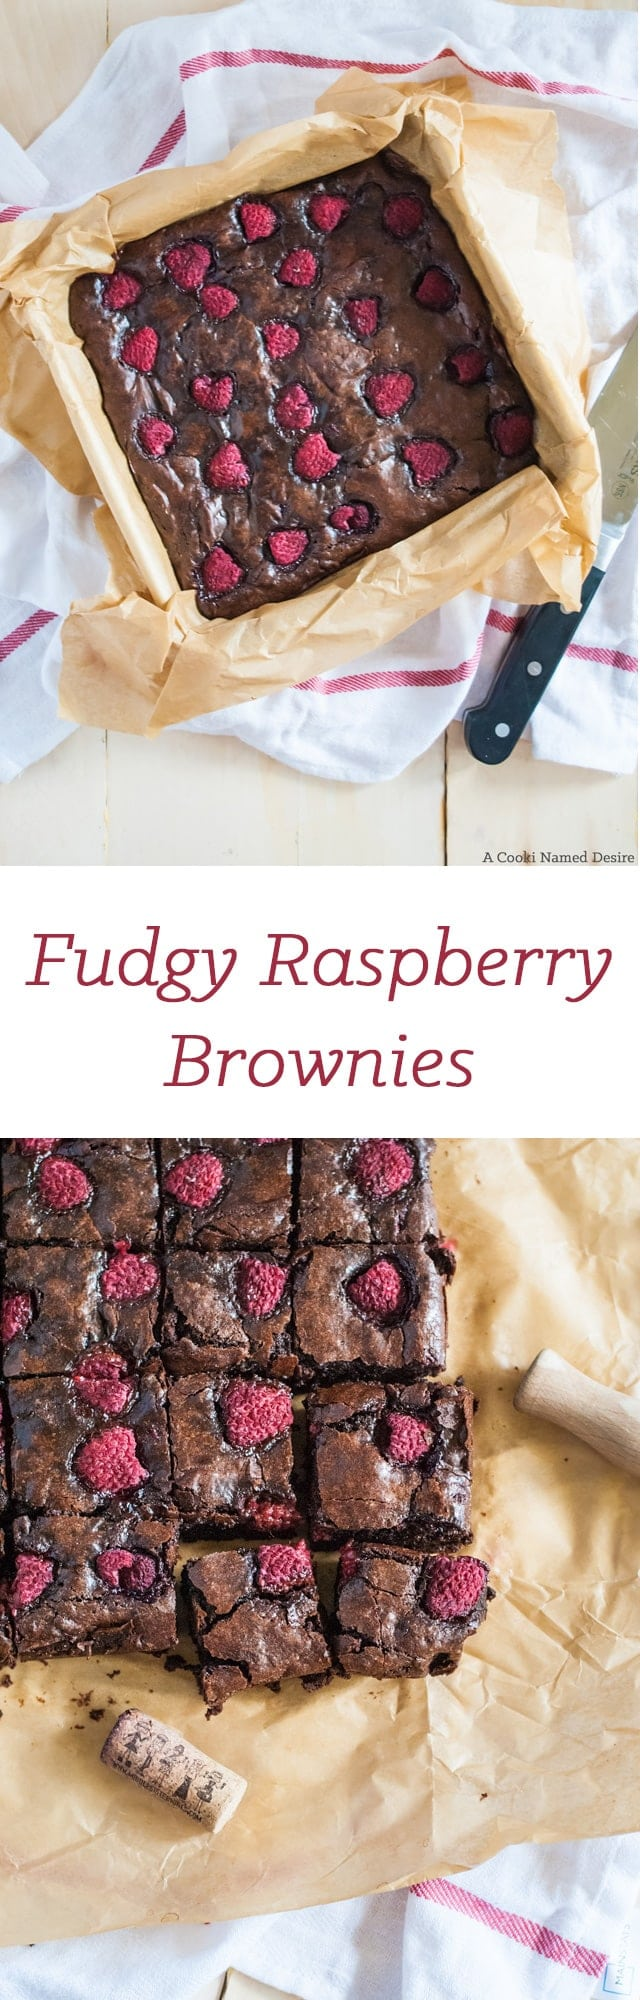 The fudgiest raspberry brownies ever